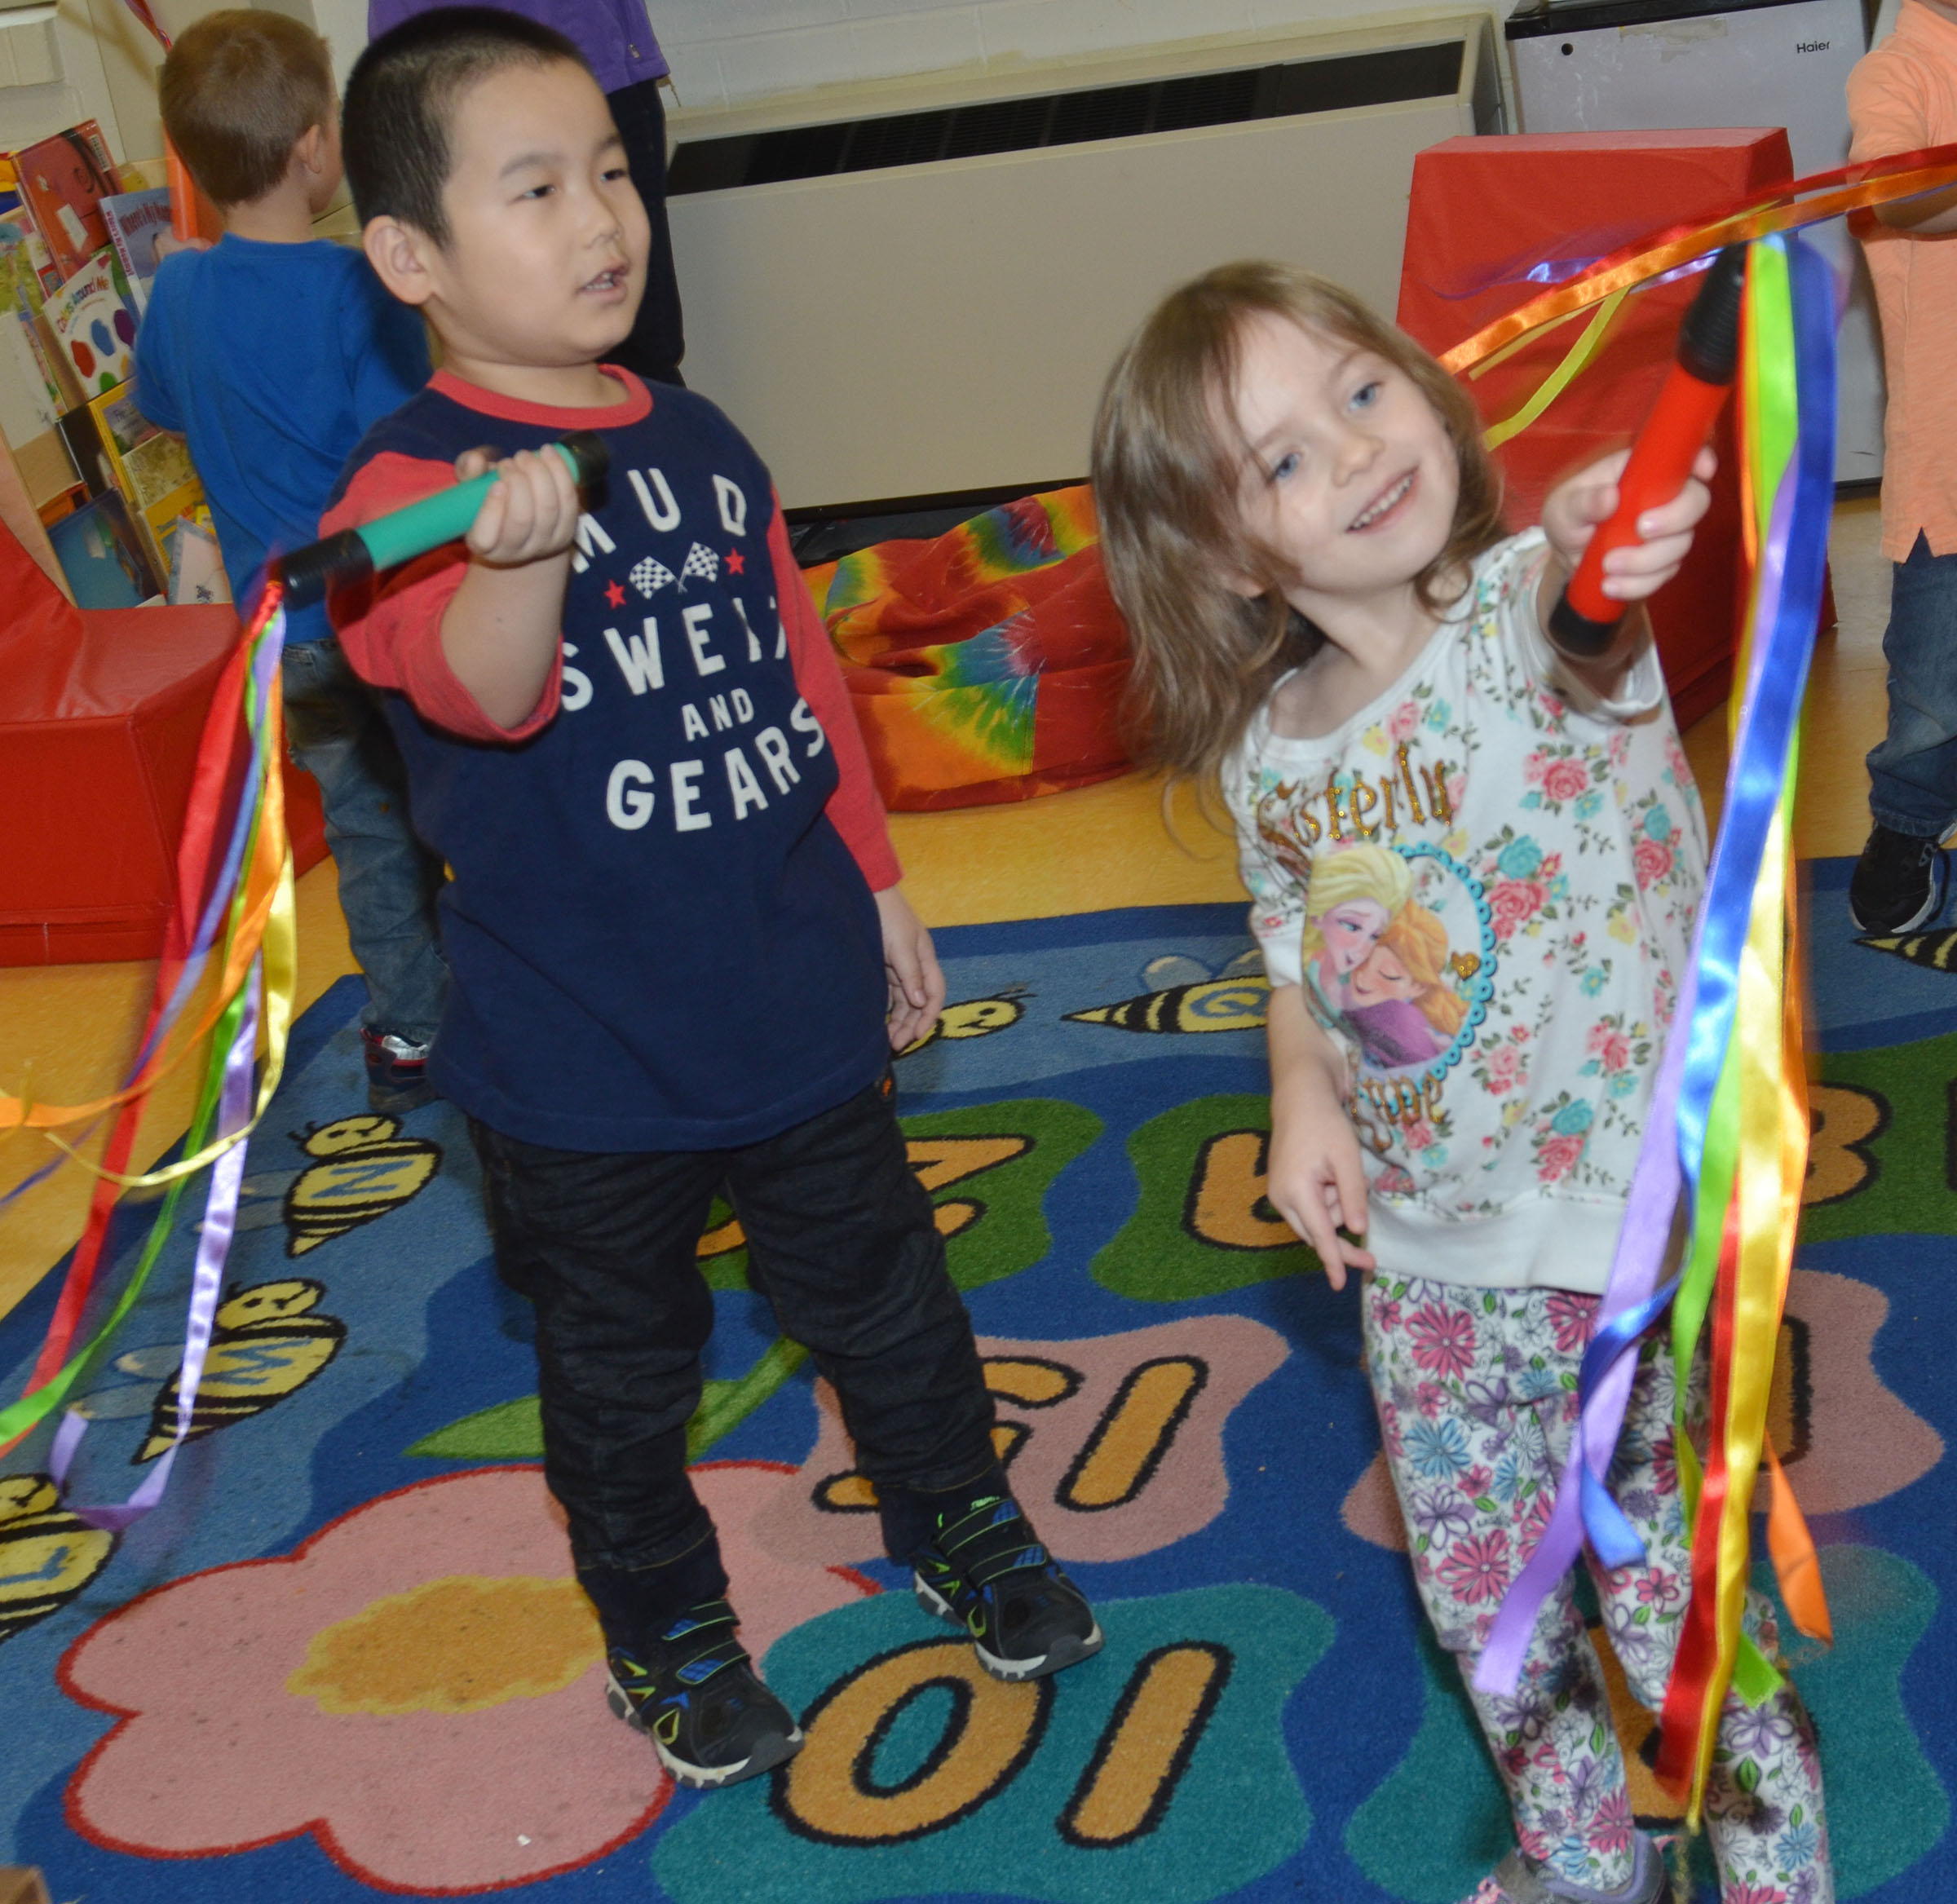 CES preschool students Calvin Yang, at left, and Dahlia Ward dance with their ribbons.